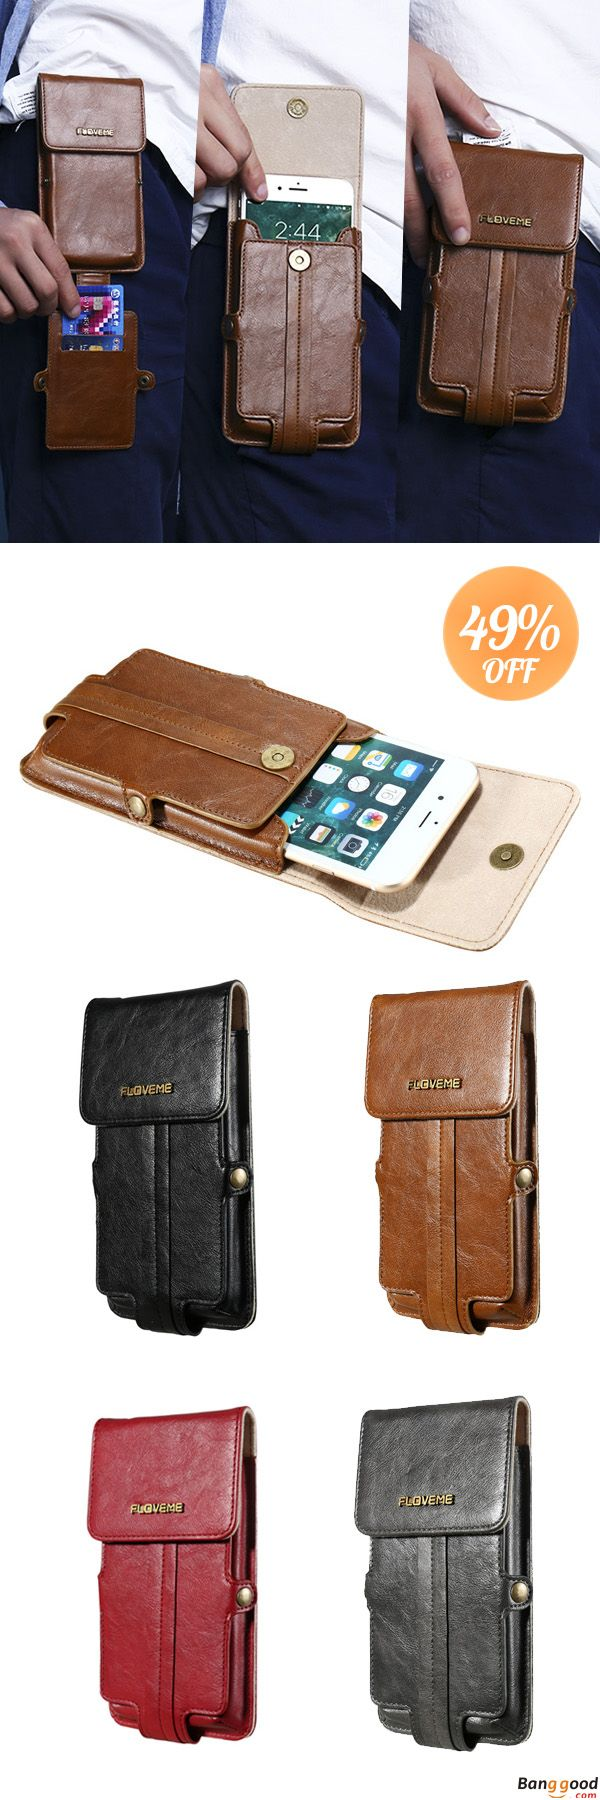 Perfect for Your Cellphone. US$20.55 + Free Shipping. 2 Card Slots Phone Bag 5.5'' Smartphone Wallet PU Leather Waist Bag For Men Women.